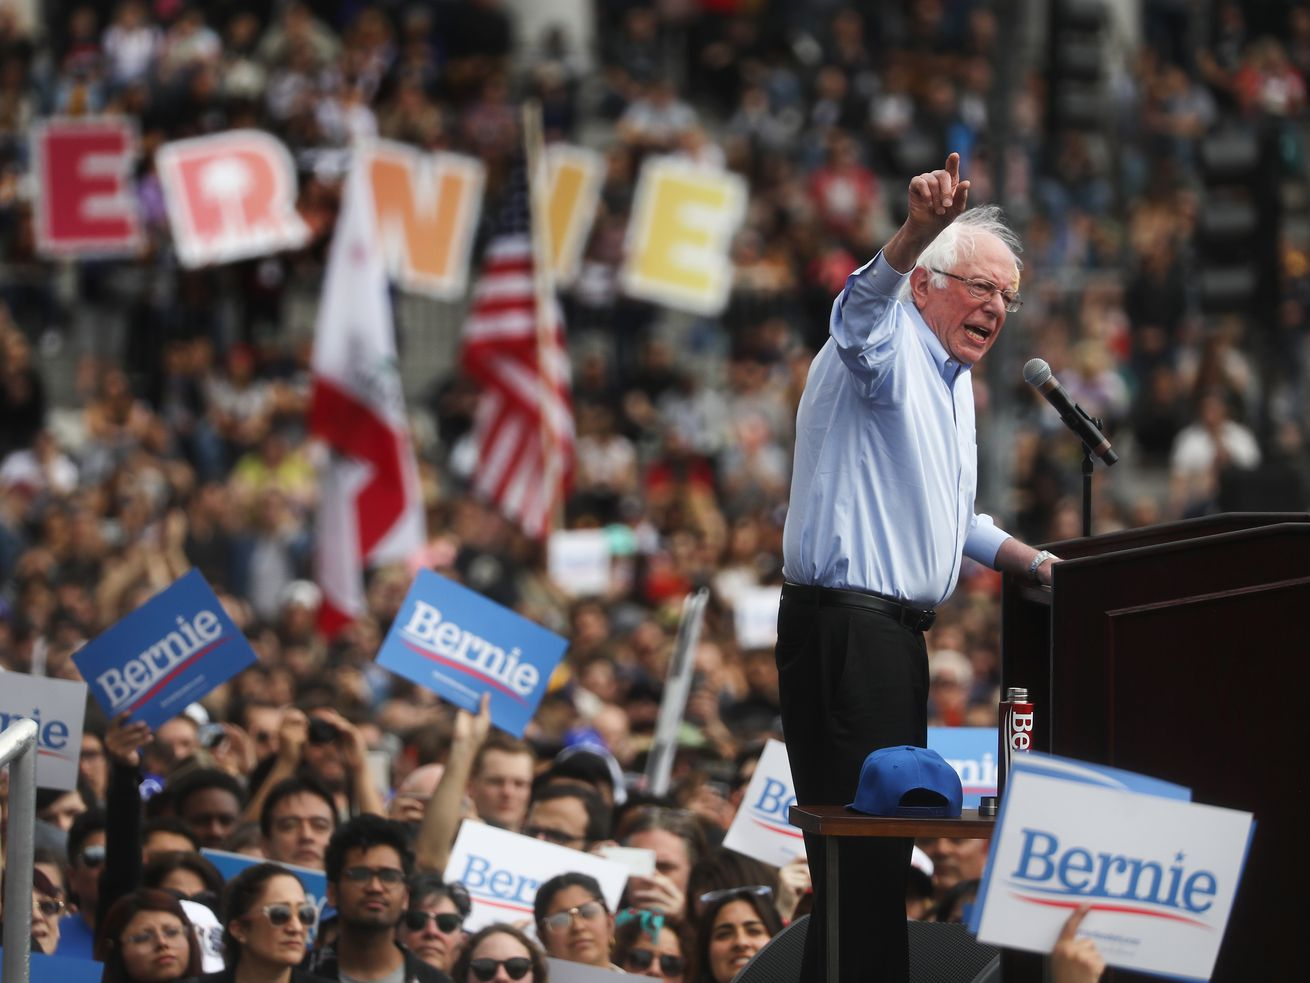 From Facebook to Twitch, Slack to Reddit, the online army behind Bernie Sanders is back in full force ahead of 2020.